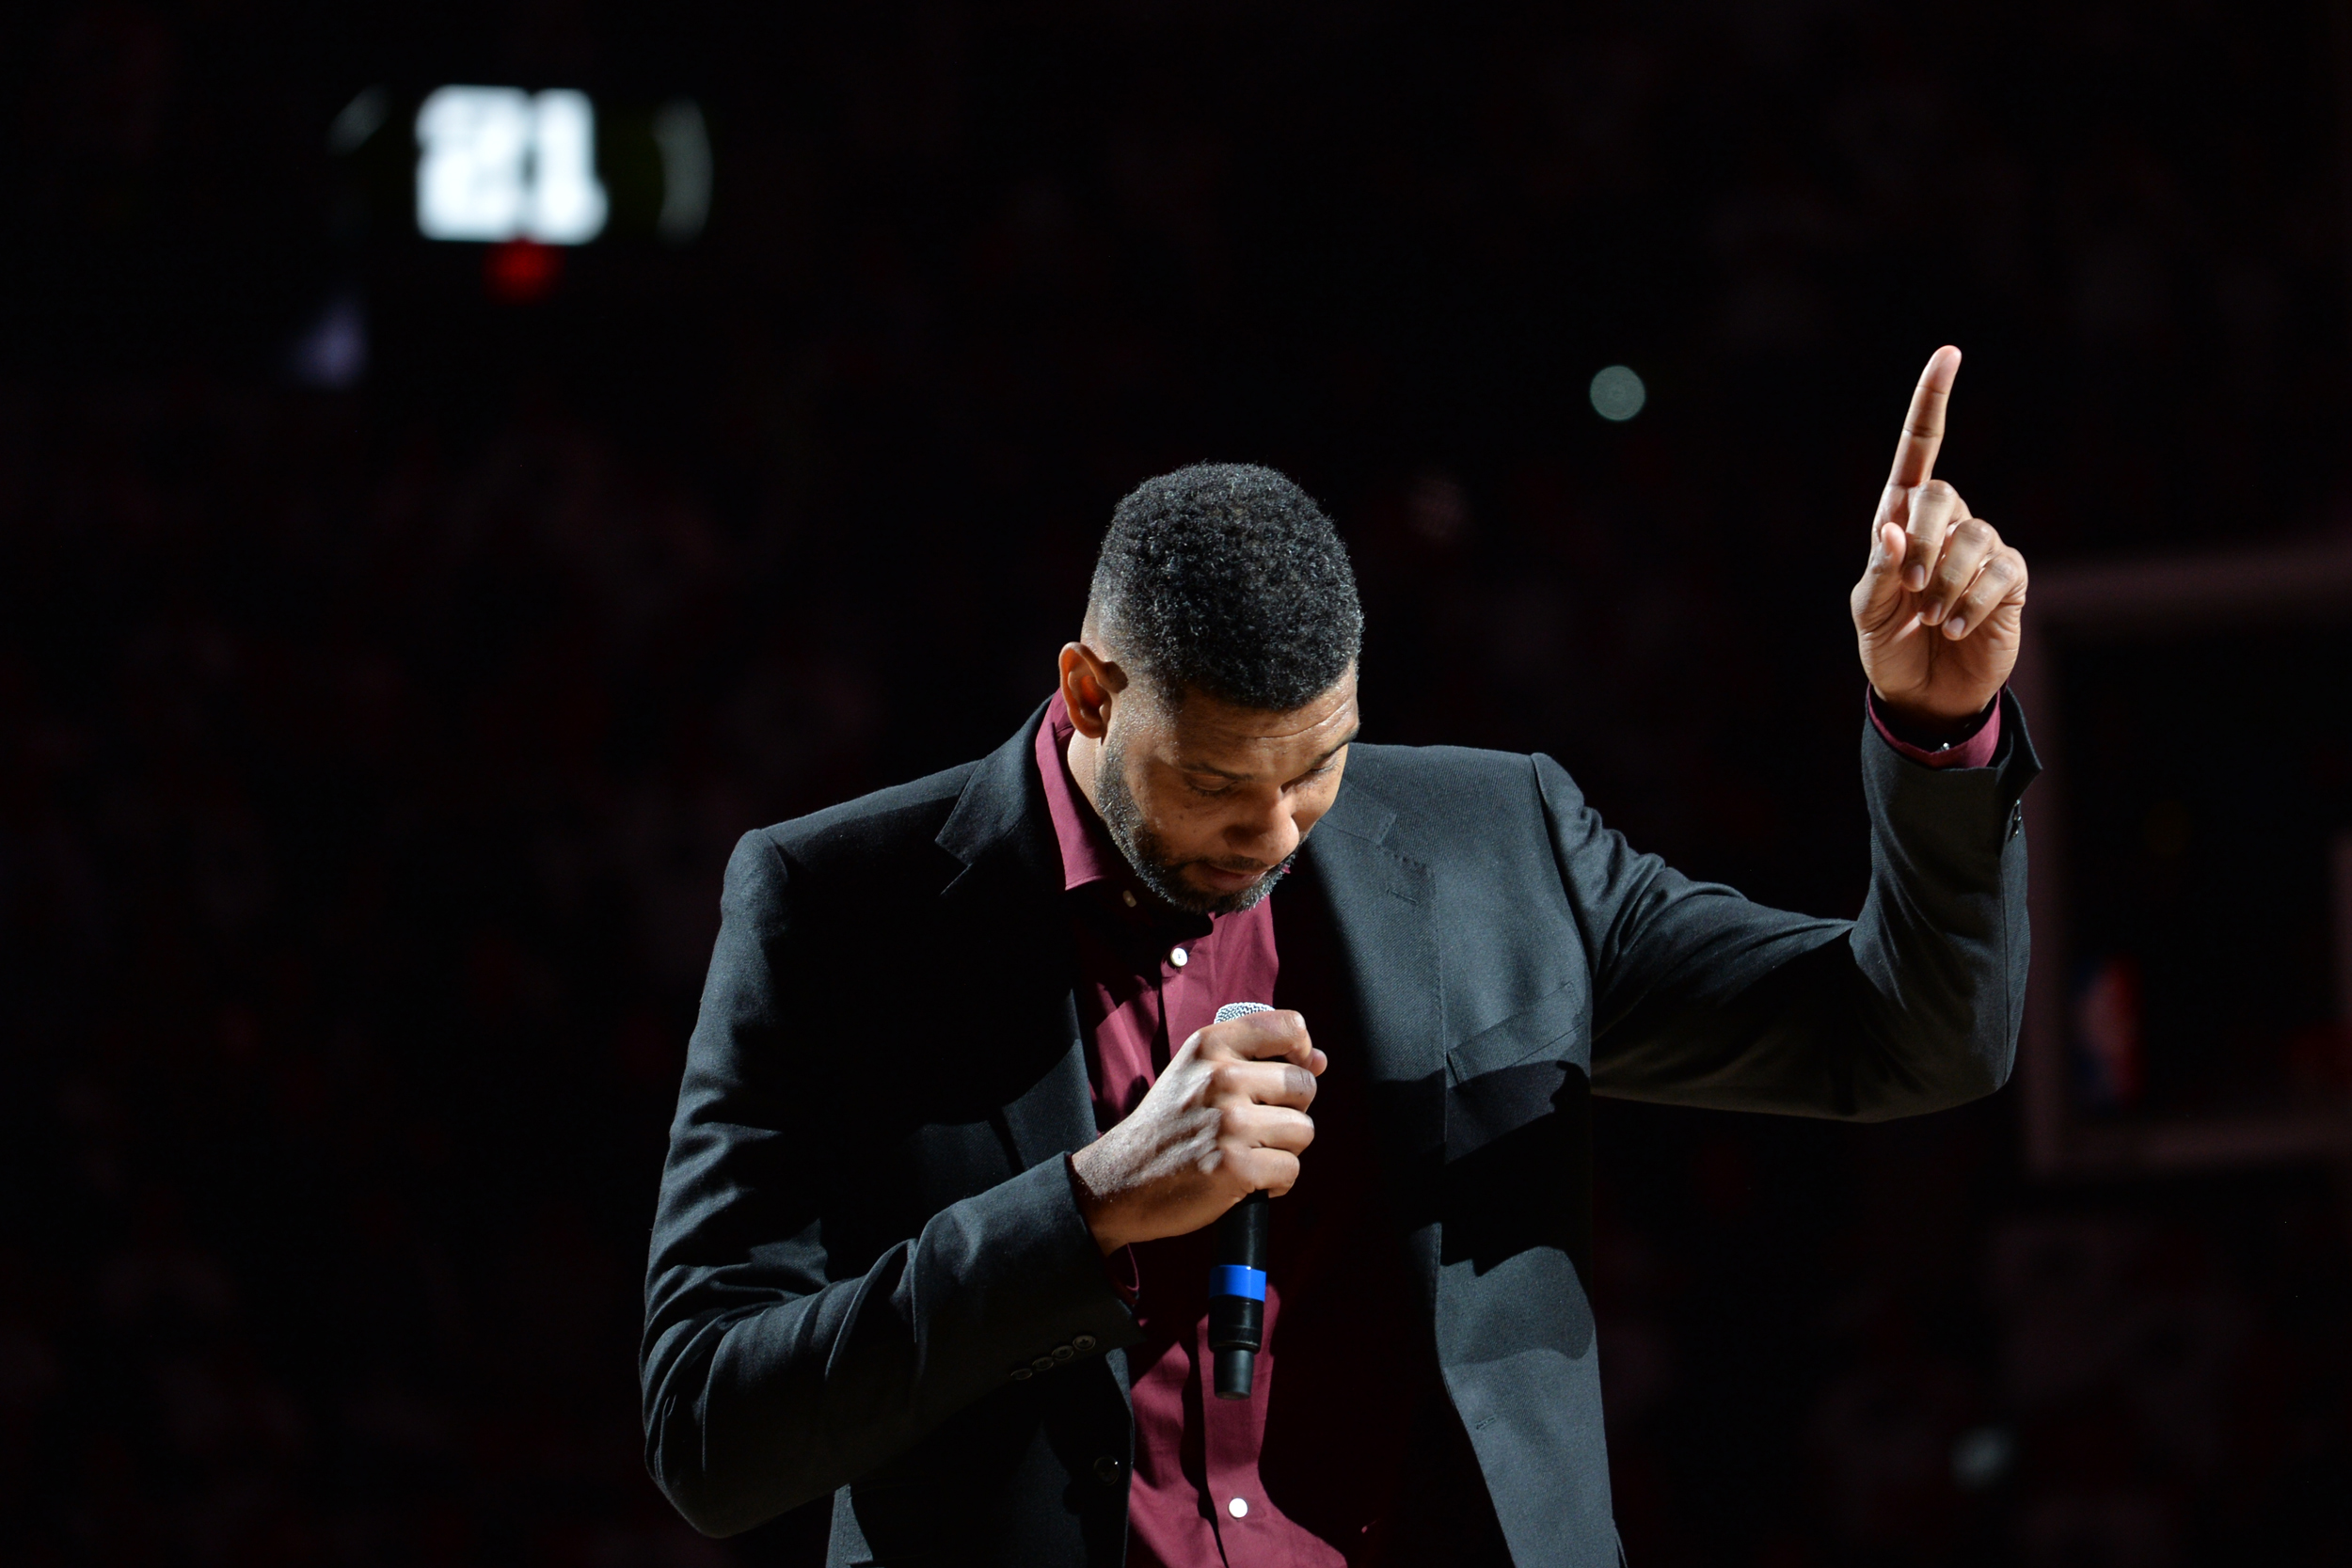 NBA Legend Tim Duncan is honored at his jersey retirement ceremony on December 18, 2016 at the AT&T Center in San Antonio, Texas.